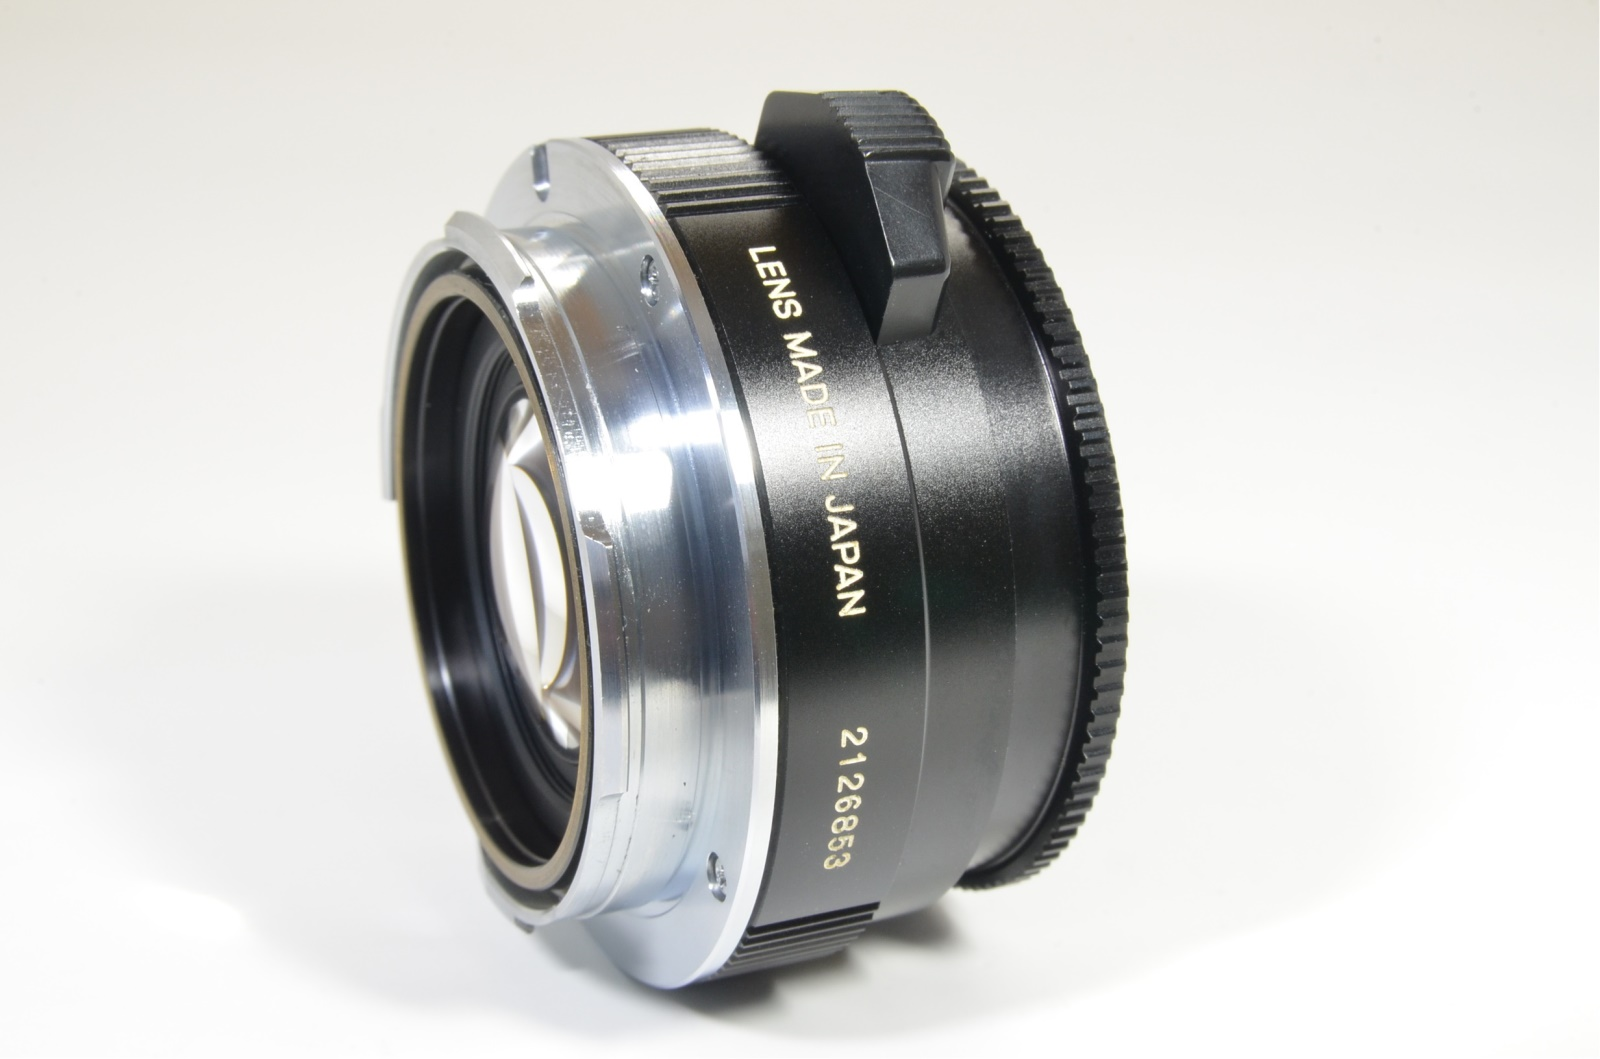 minolta cle film camera, lens m-rokkor 40mm f2 and 90mm f4 shooting tested